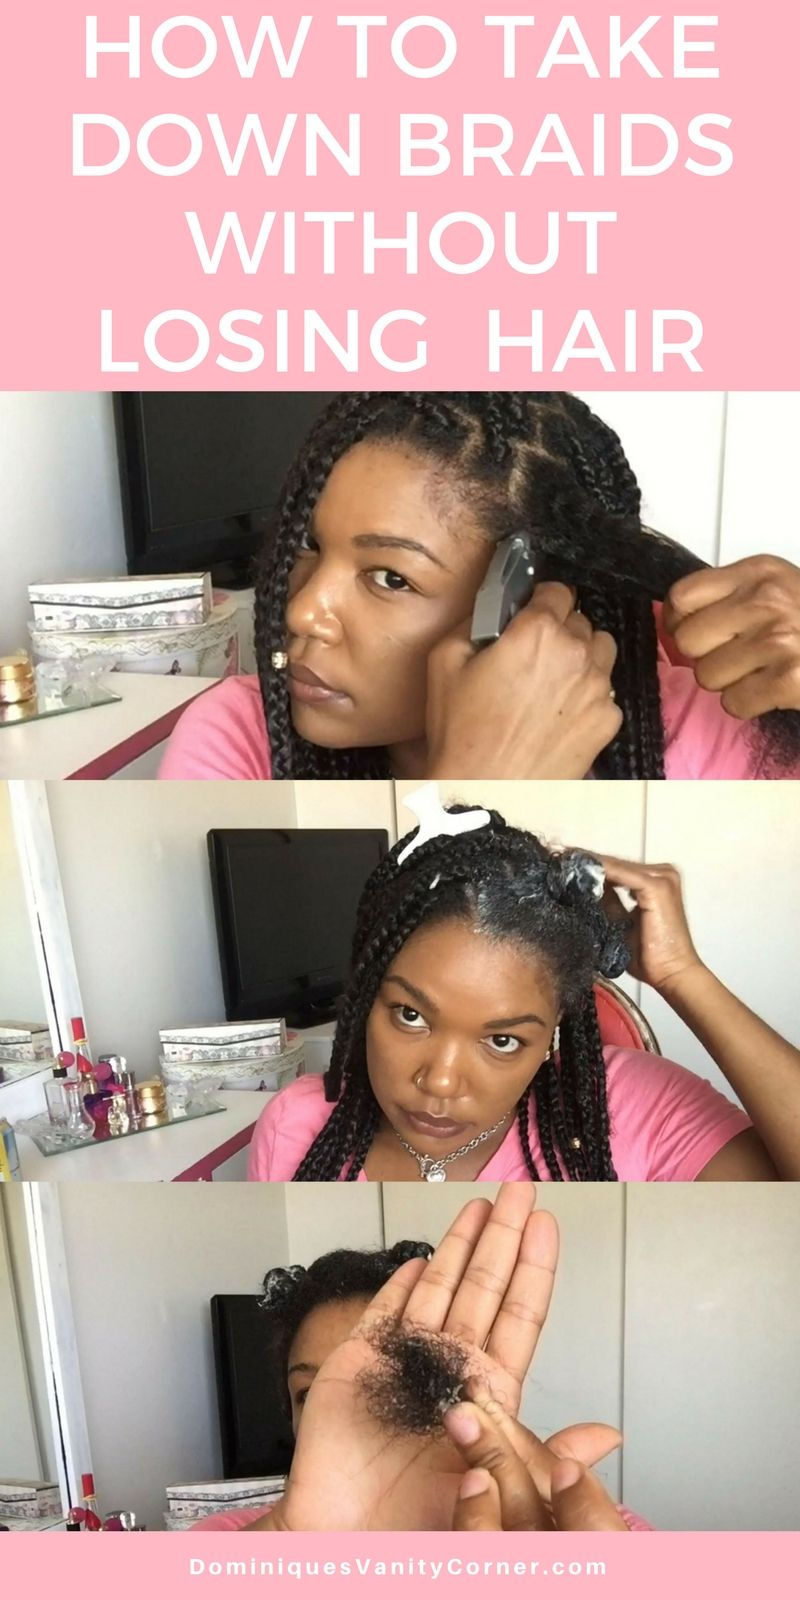 How to take down braids without losing hair jamaican castor oil